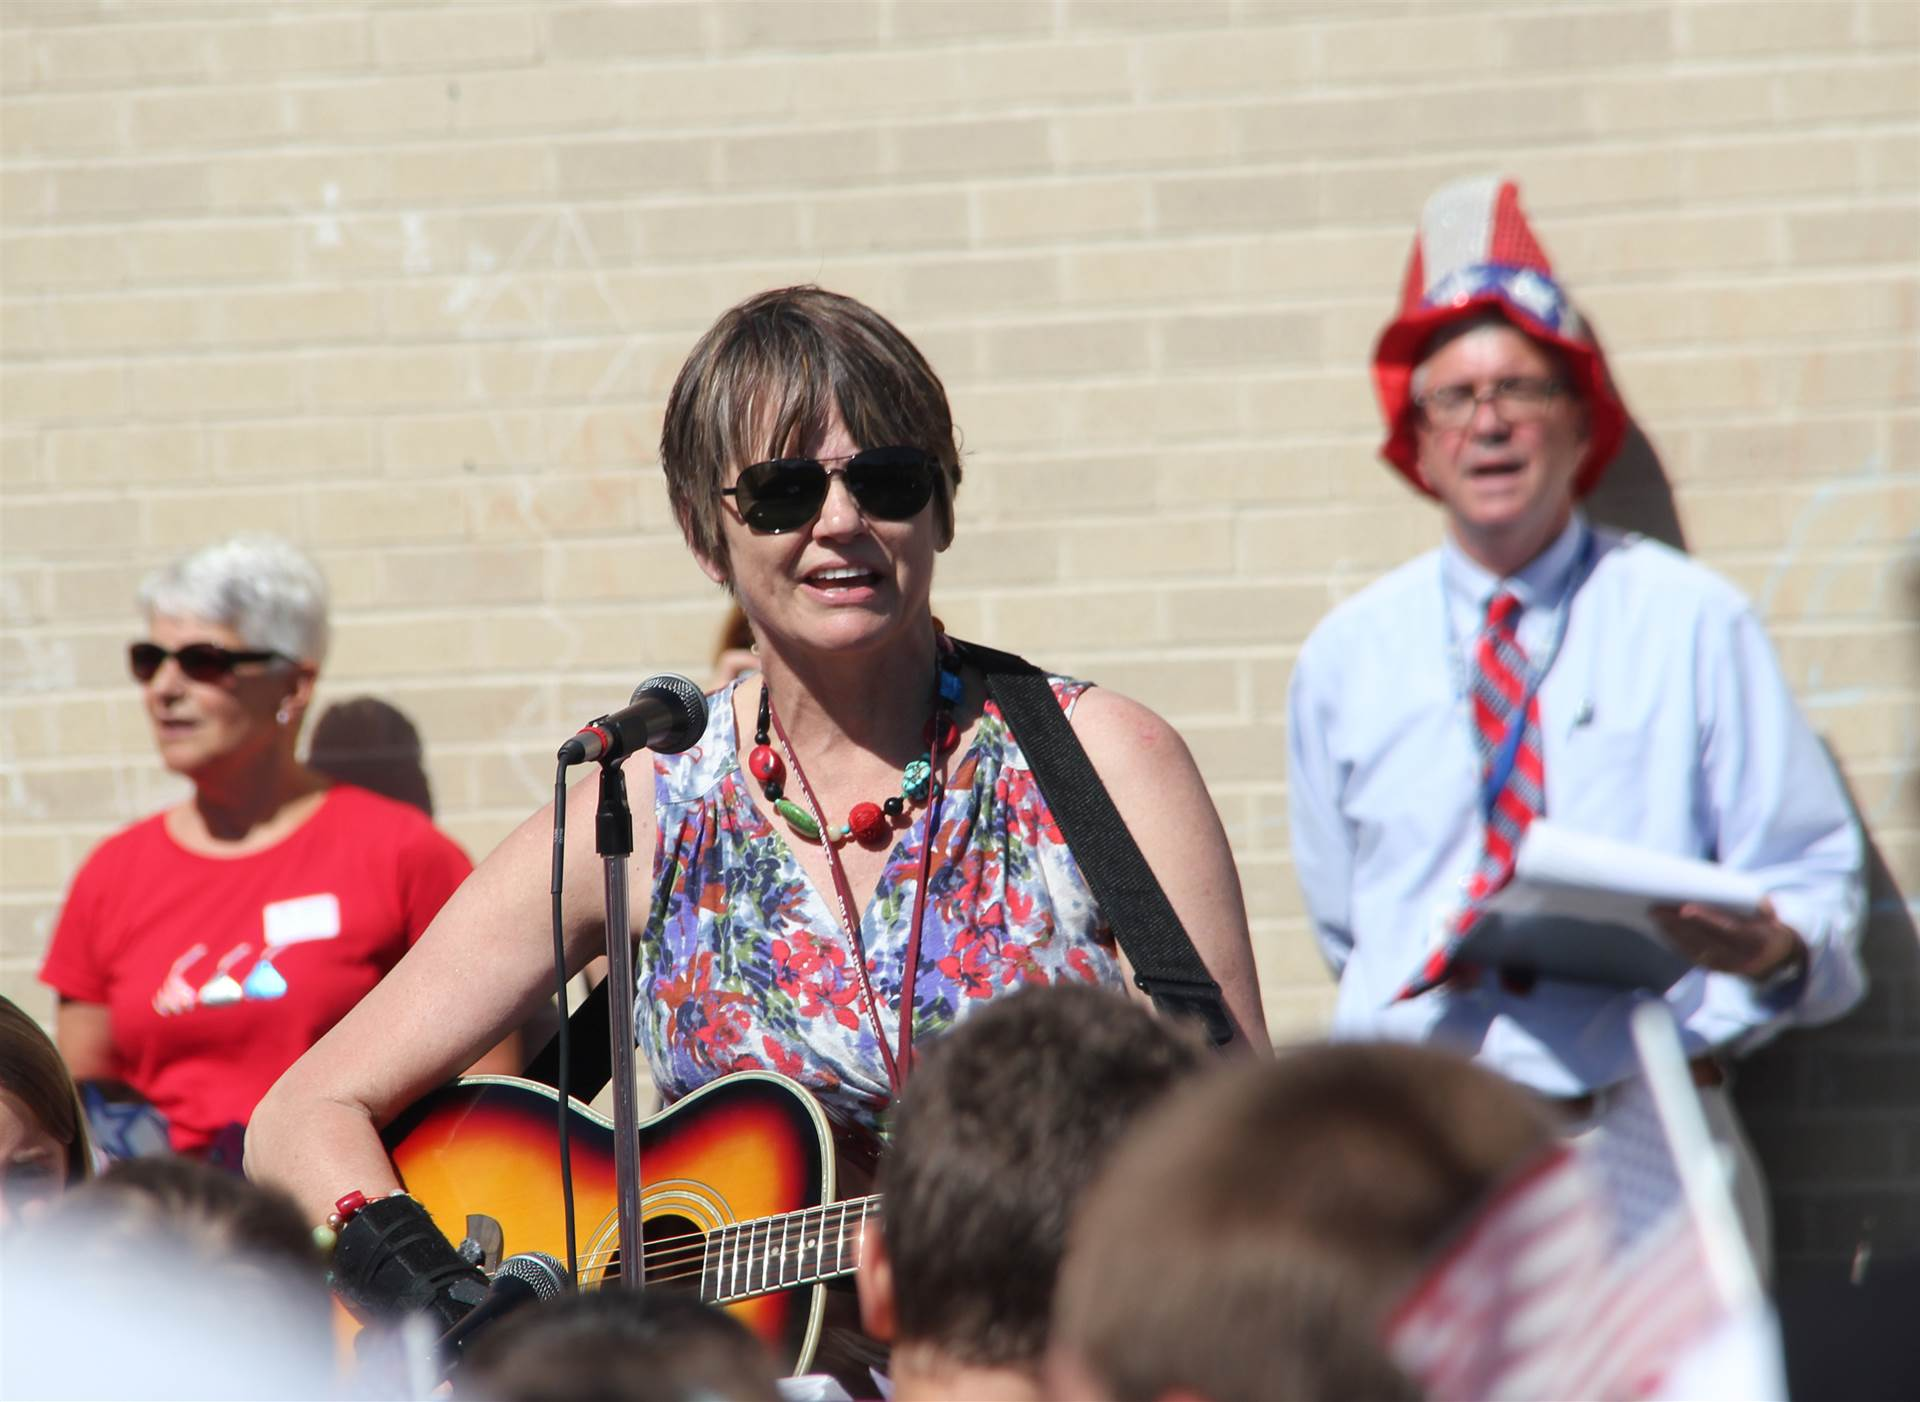 Margaret Buhl sings patriotic song at Flag Day event